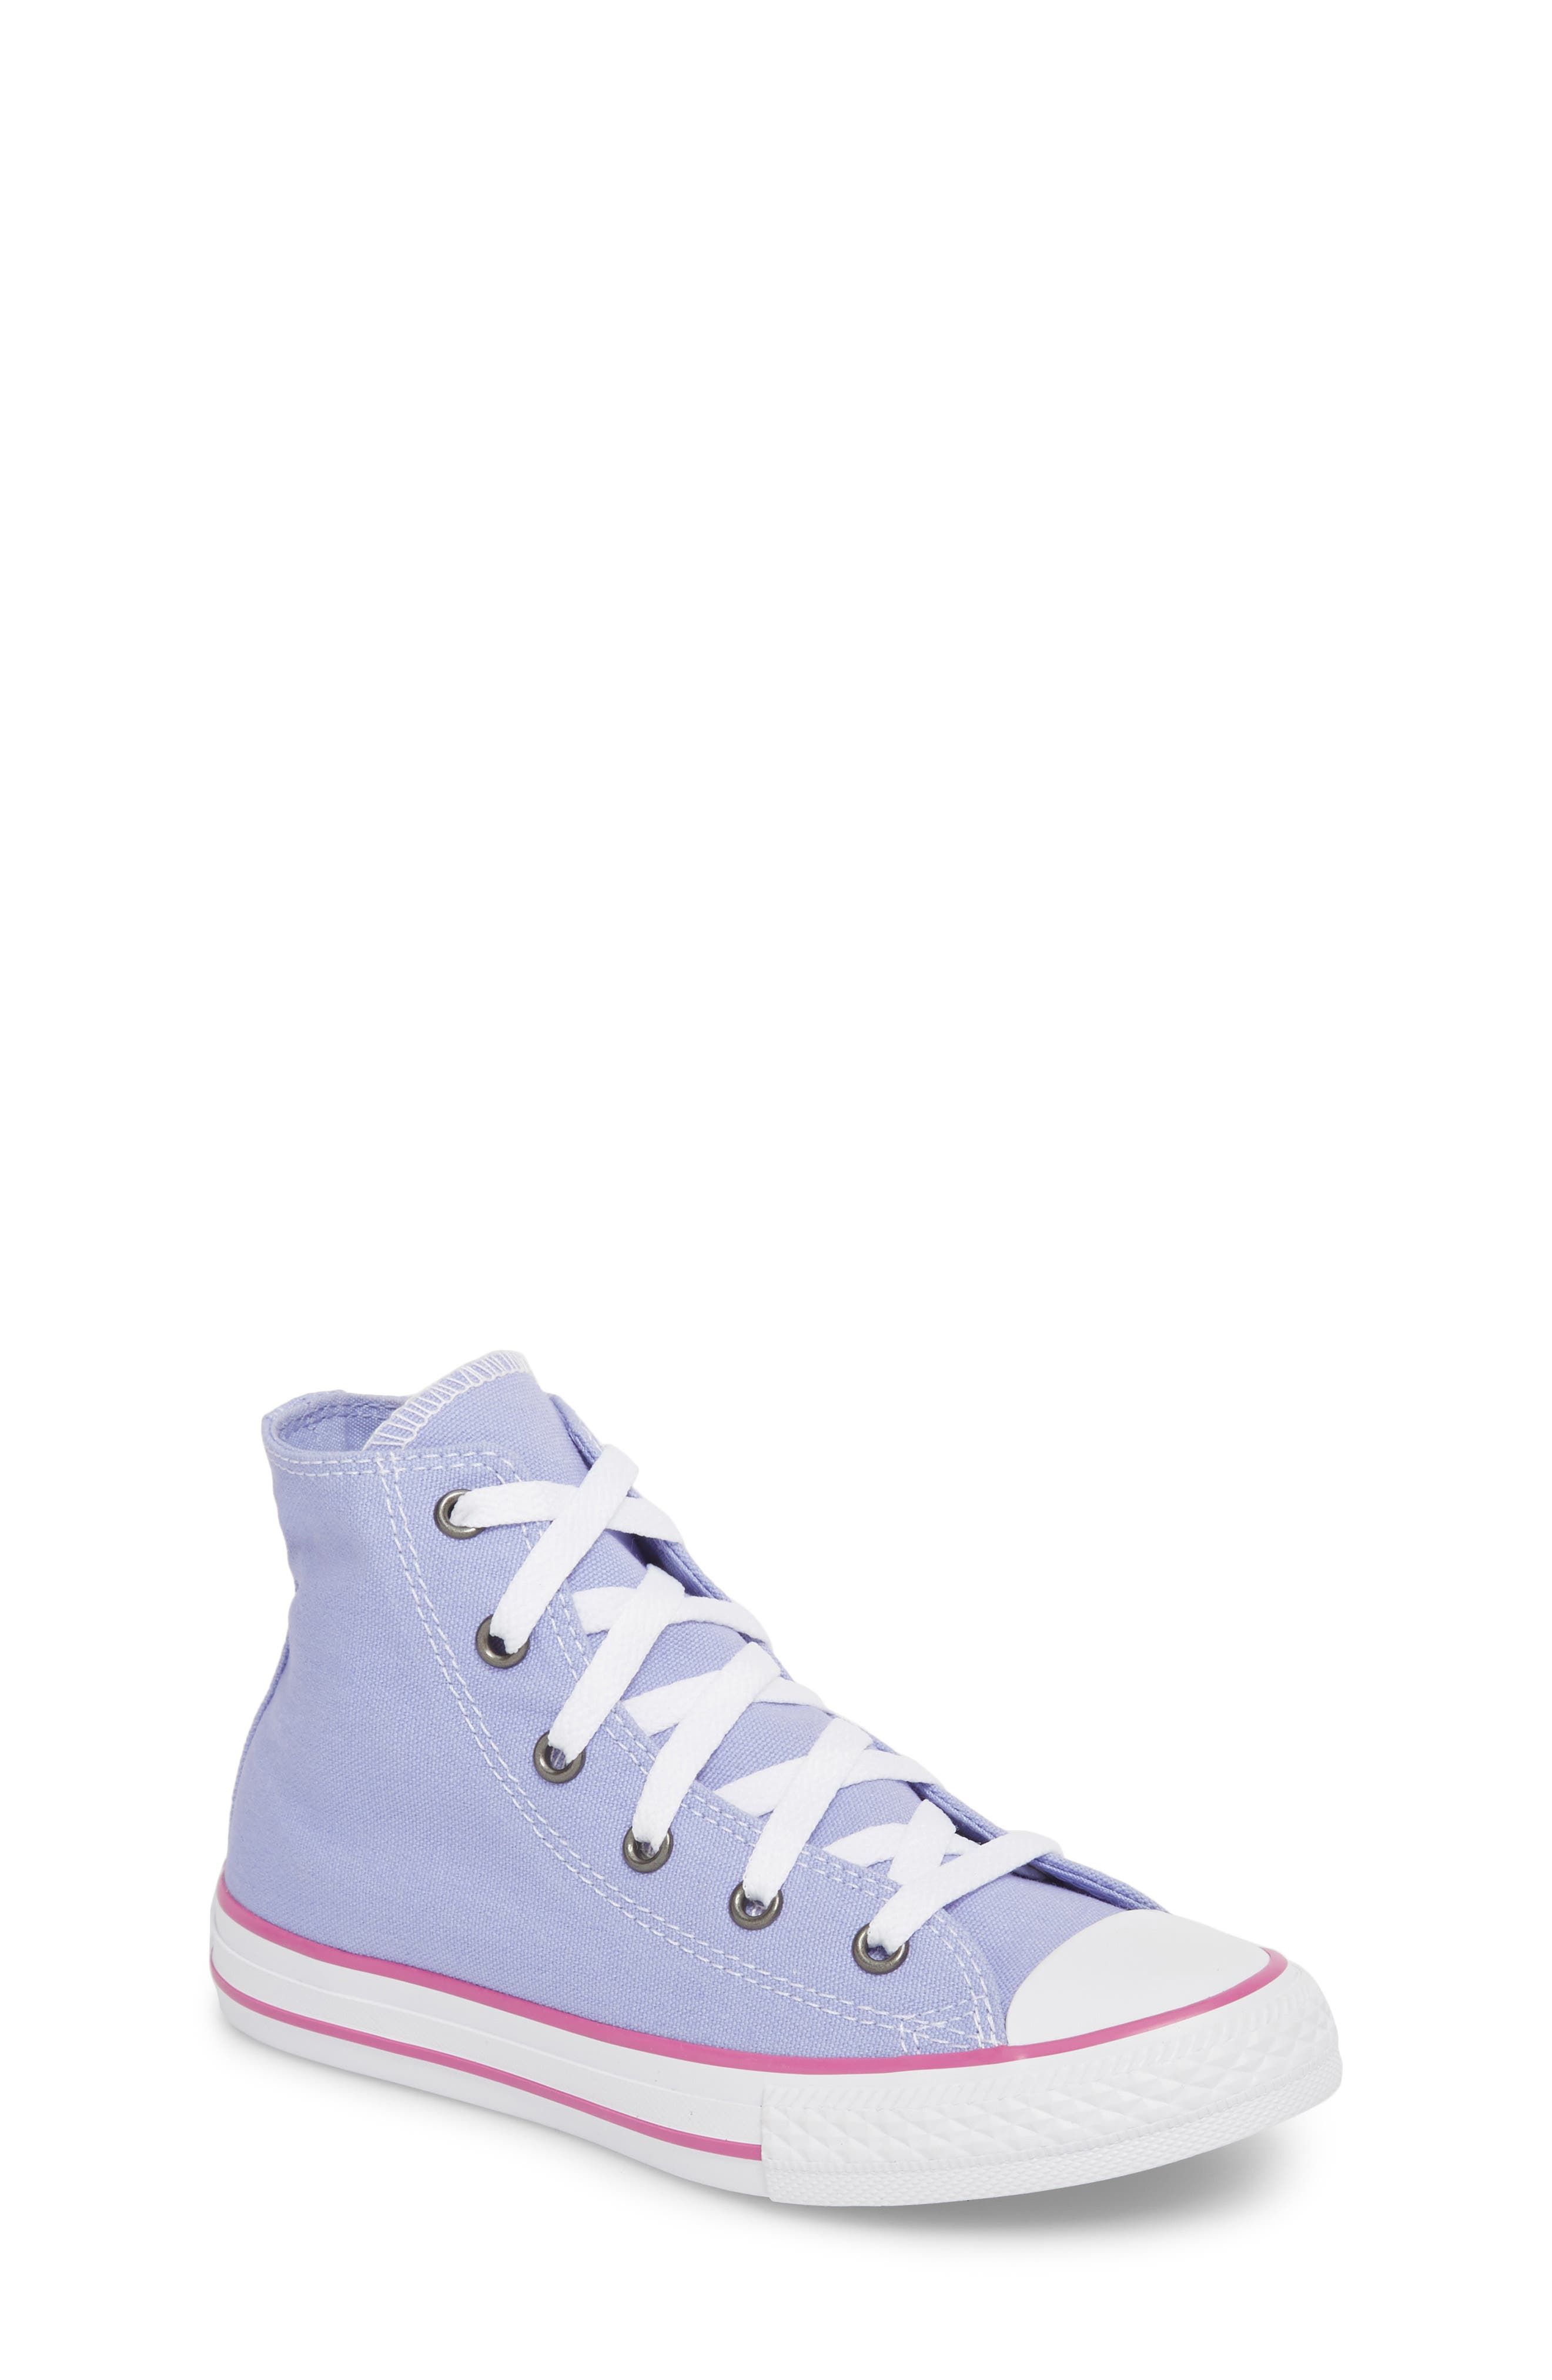 Chuck Taylor<sup>®</sup> All Star<sup>®</sup> High Top Sneaker,                         Main,                         color, Twilight Purple